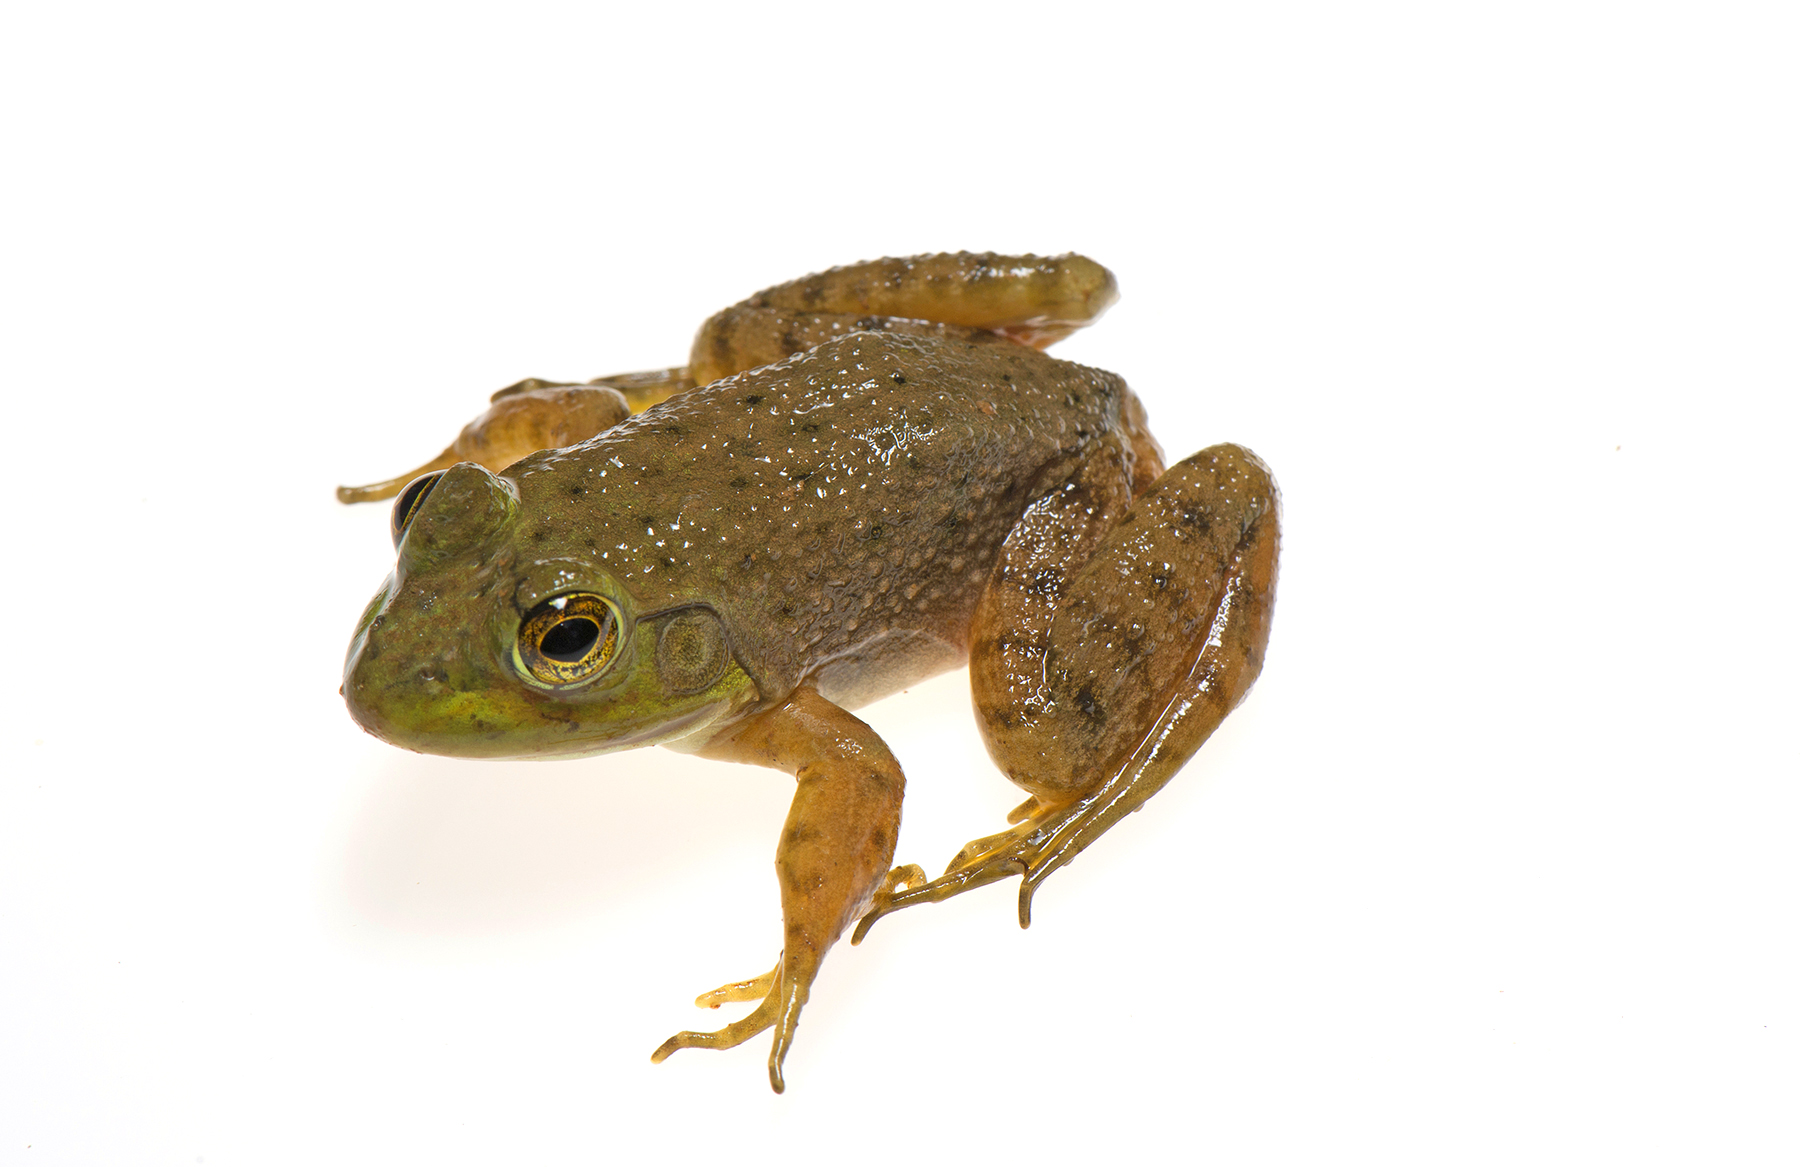 800_9701 Northern Green Frog juvenile .jpg